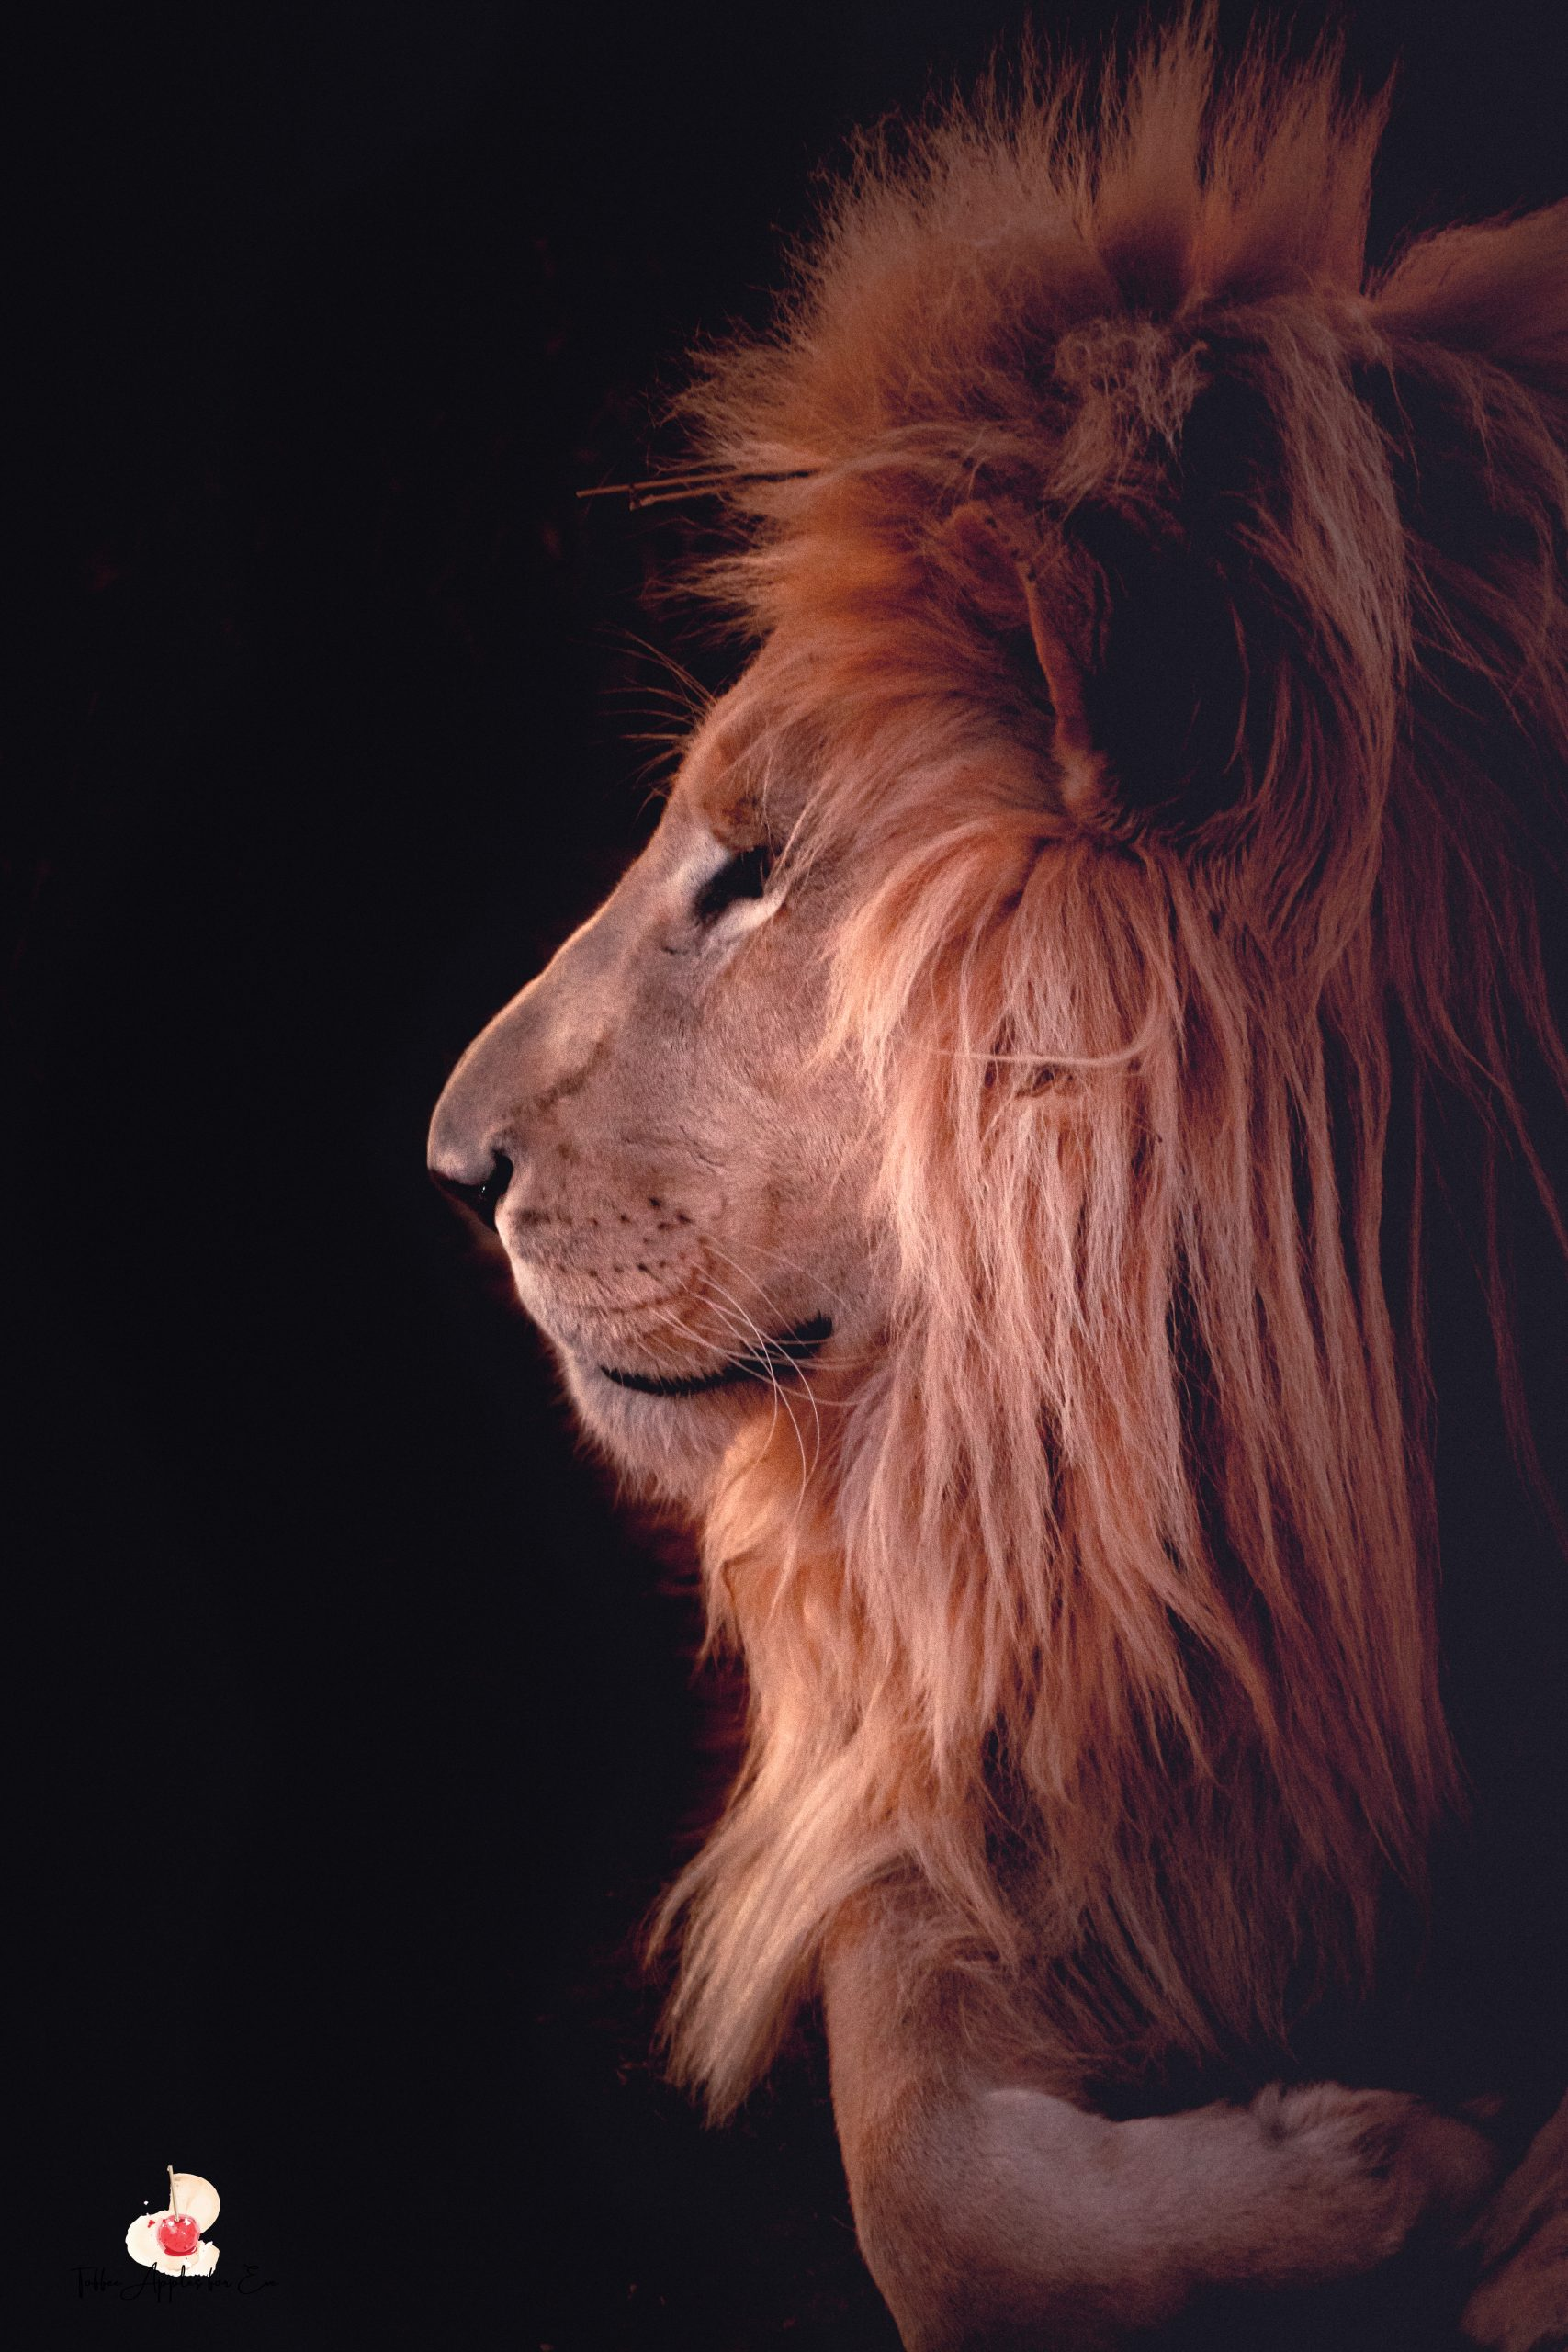 King of all kings - White lion